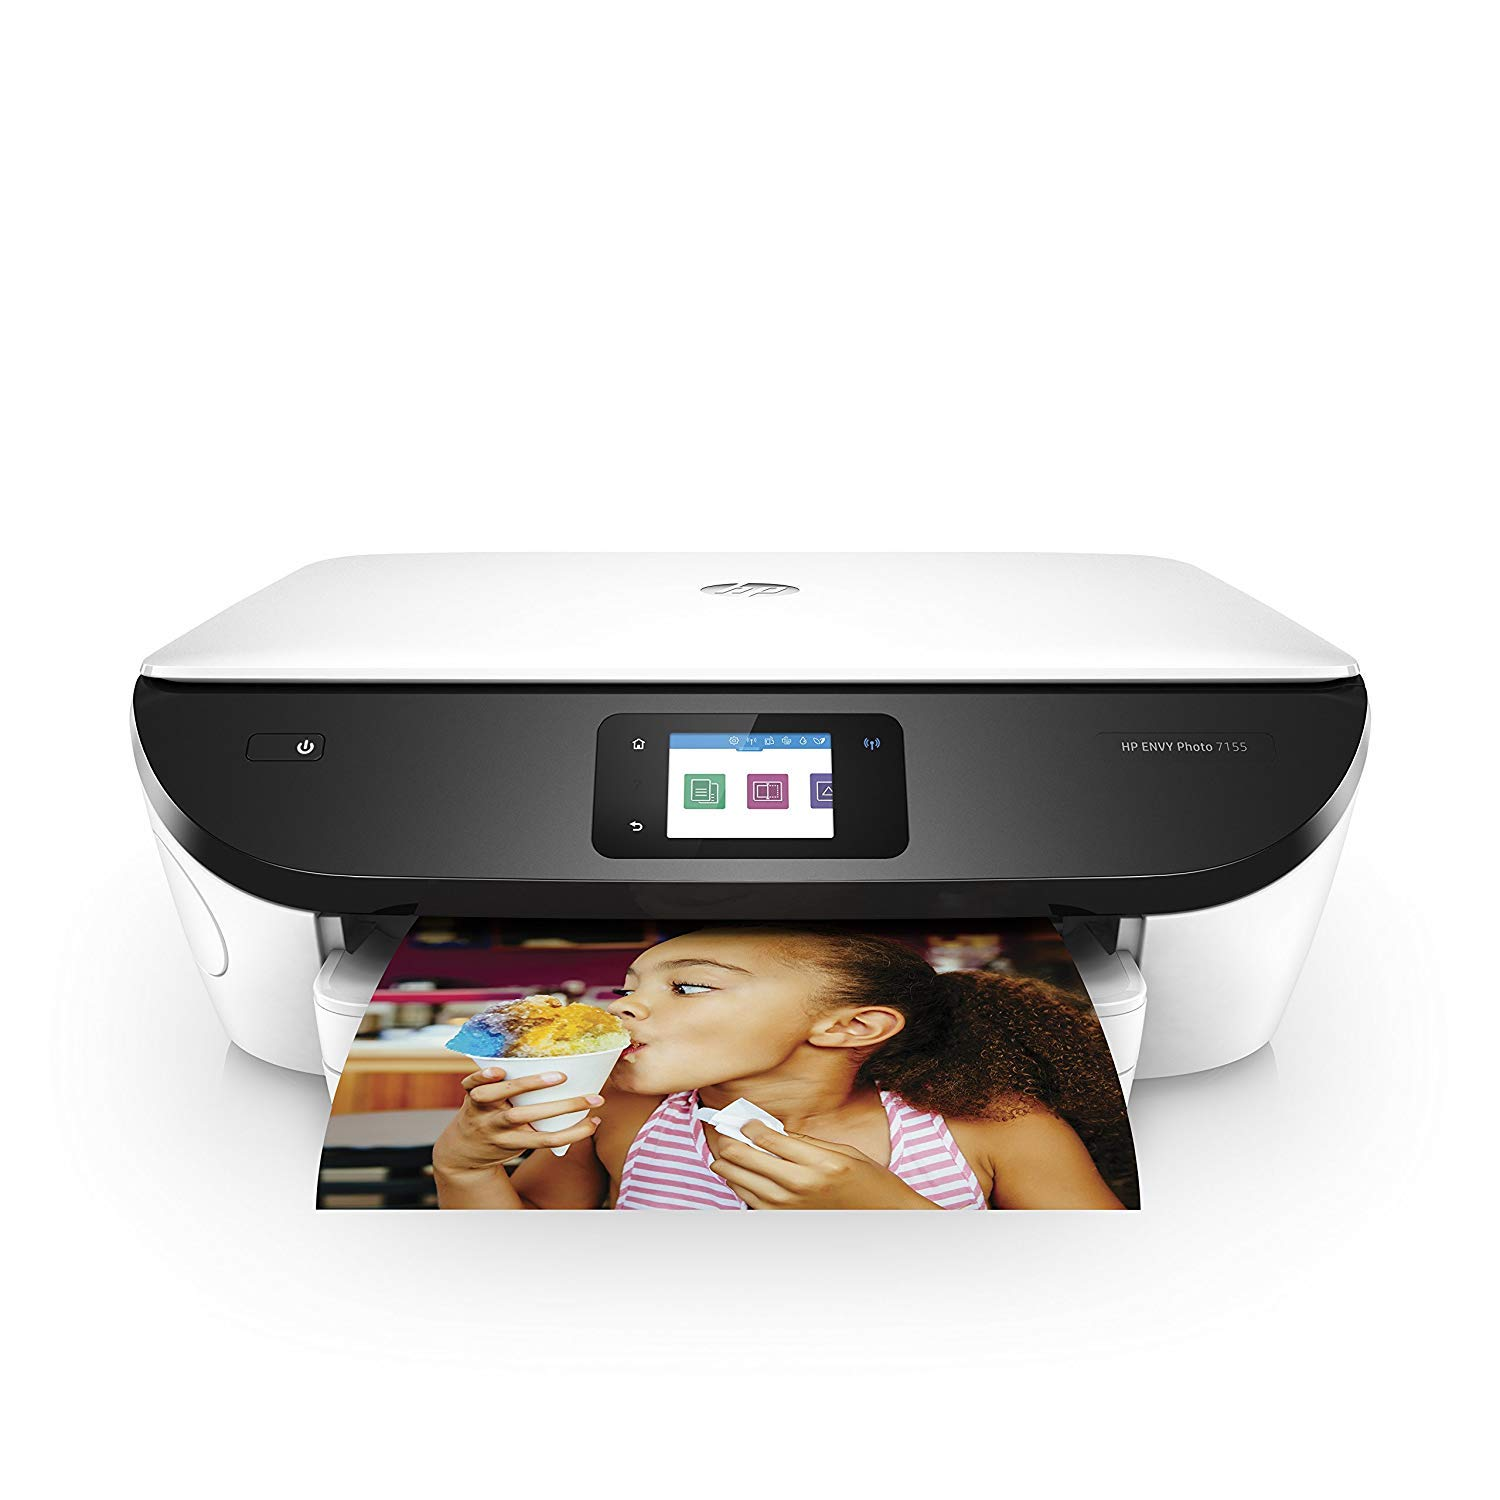 HP ENVY Photo 7155 All in One Photo Printer with Wireless Printing, HP Instant Ink & Amazon Dash Replenishment ready - White with Std Ink Bundle